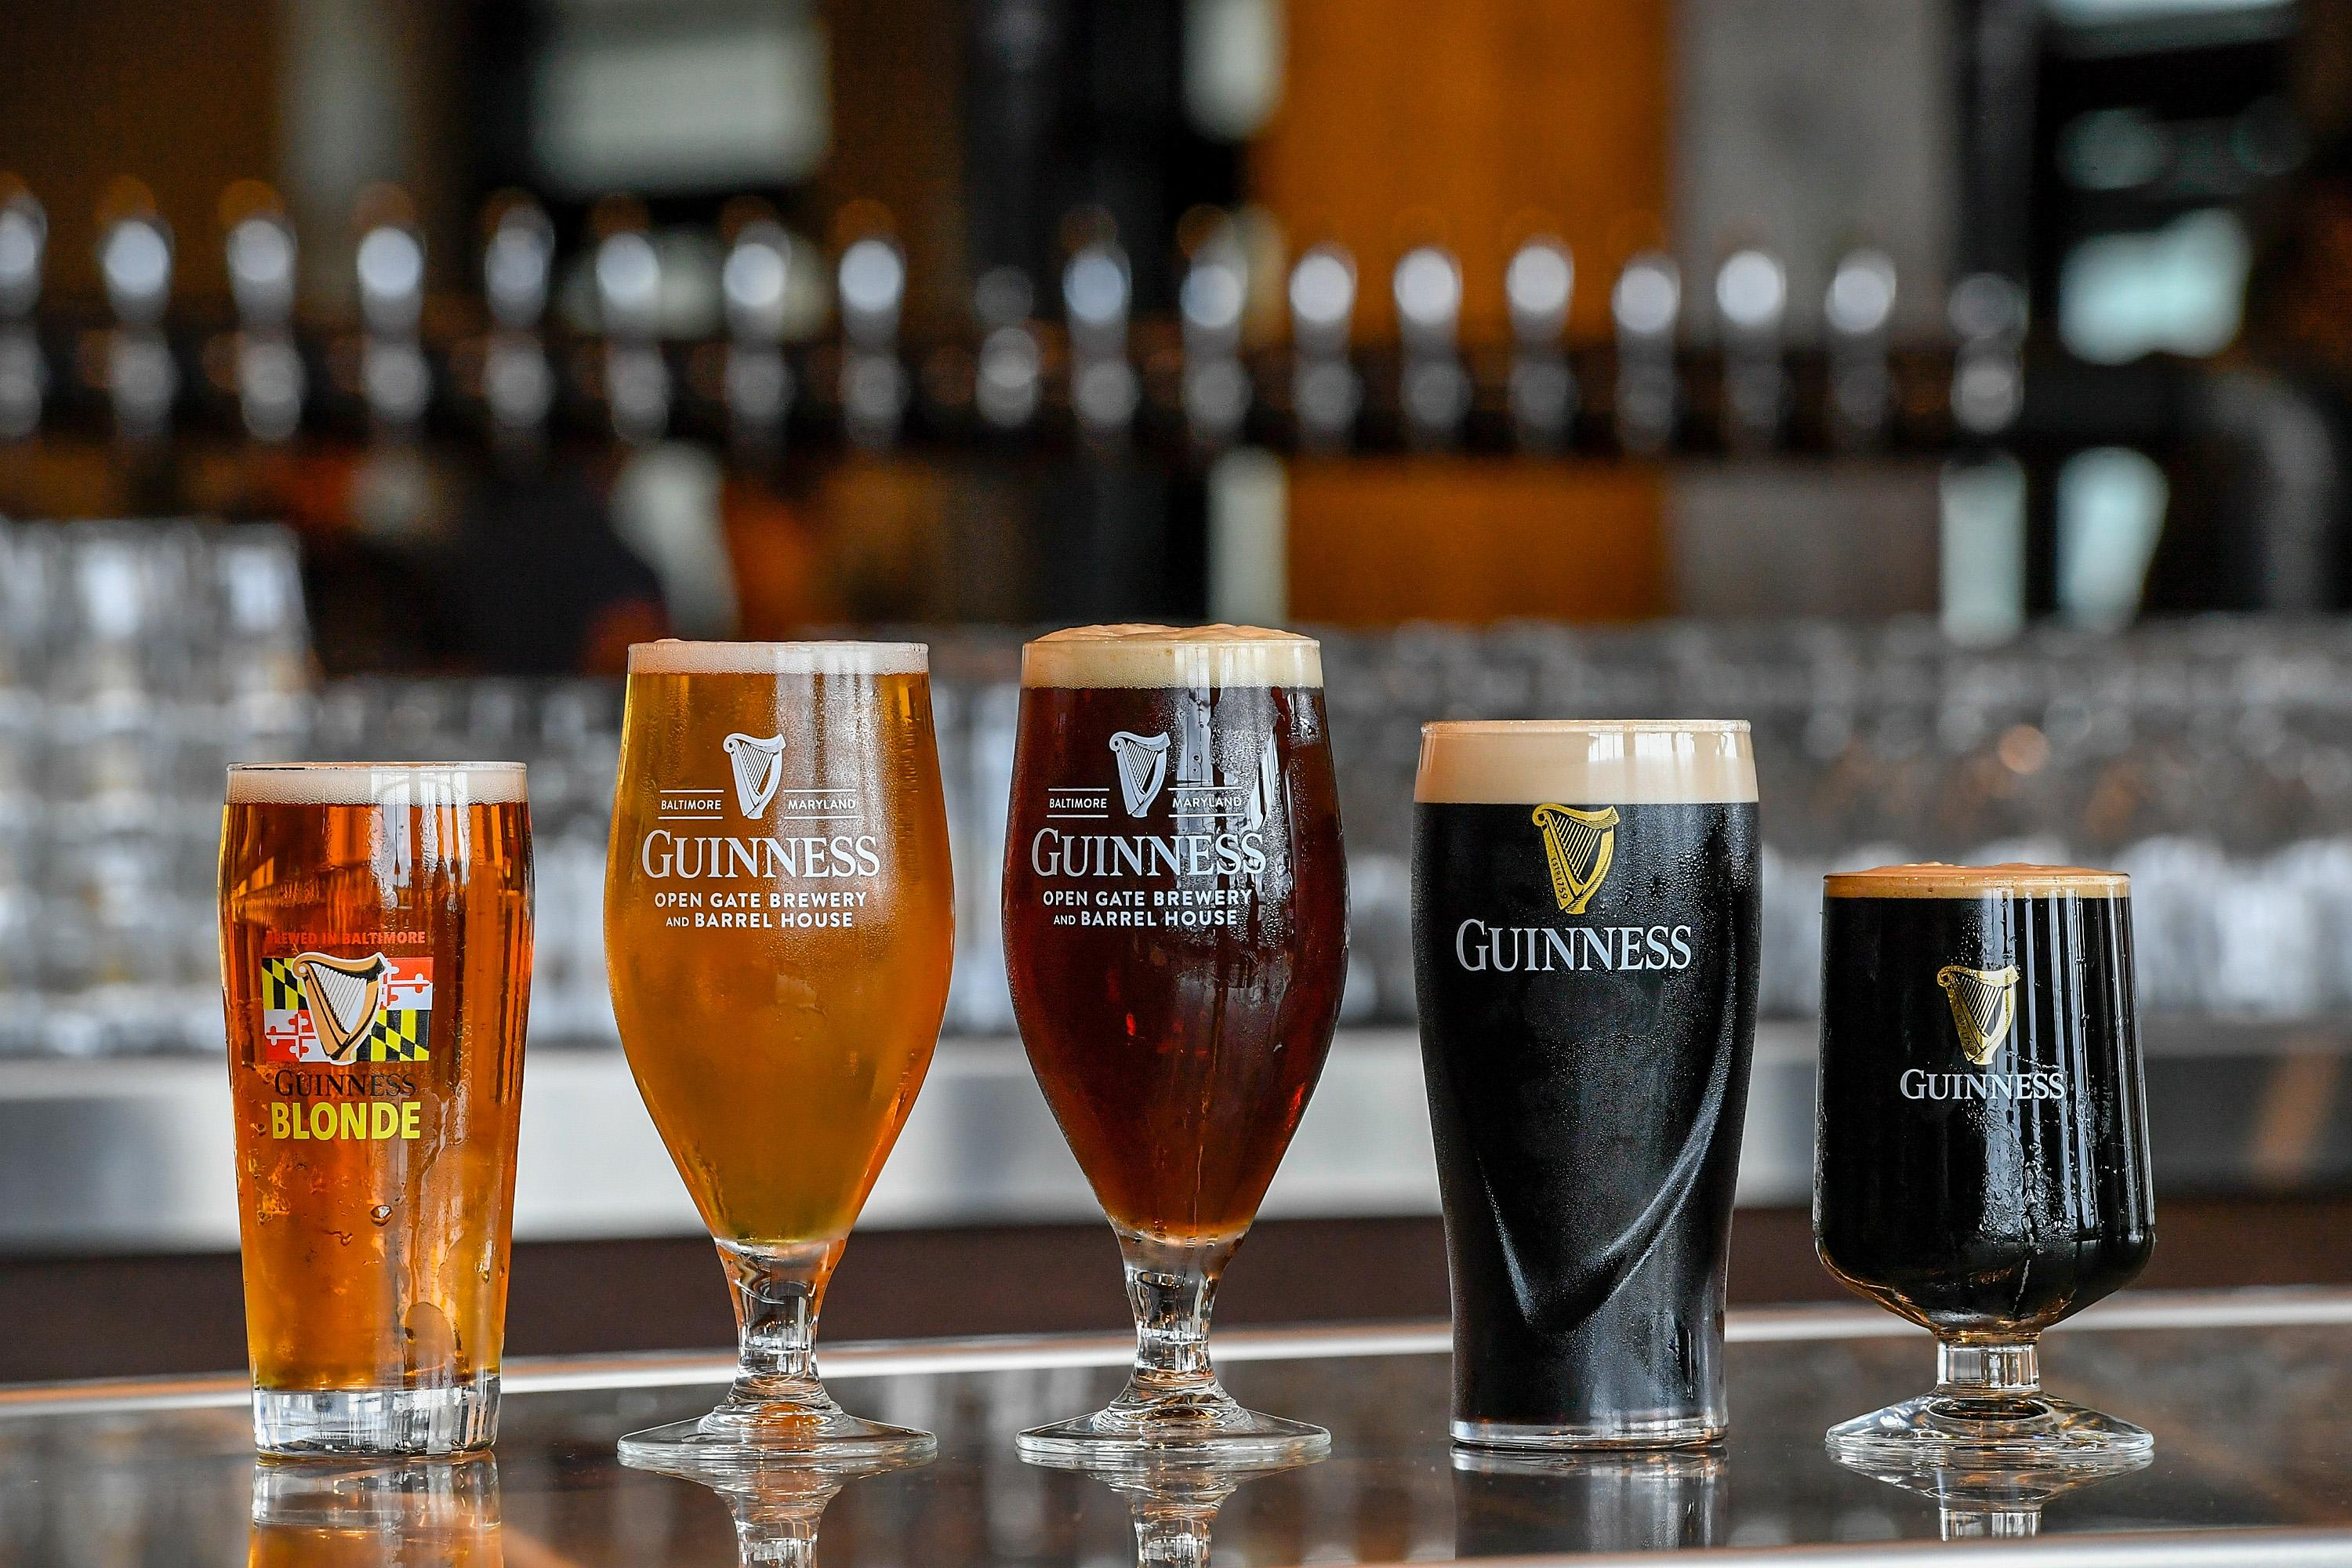 The Guinness Open Gate Brewery & Barrel House opened this summer just south of Baltimore. (Image: Larry French/Getty Images for Guinness){ }